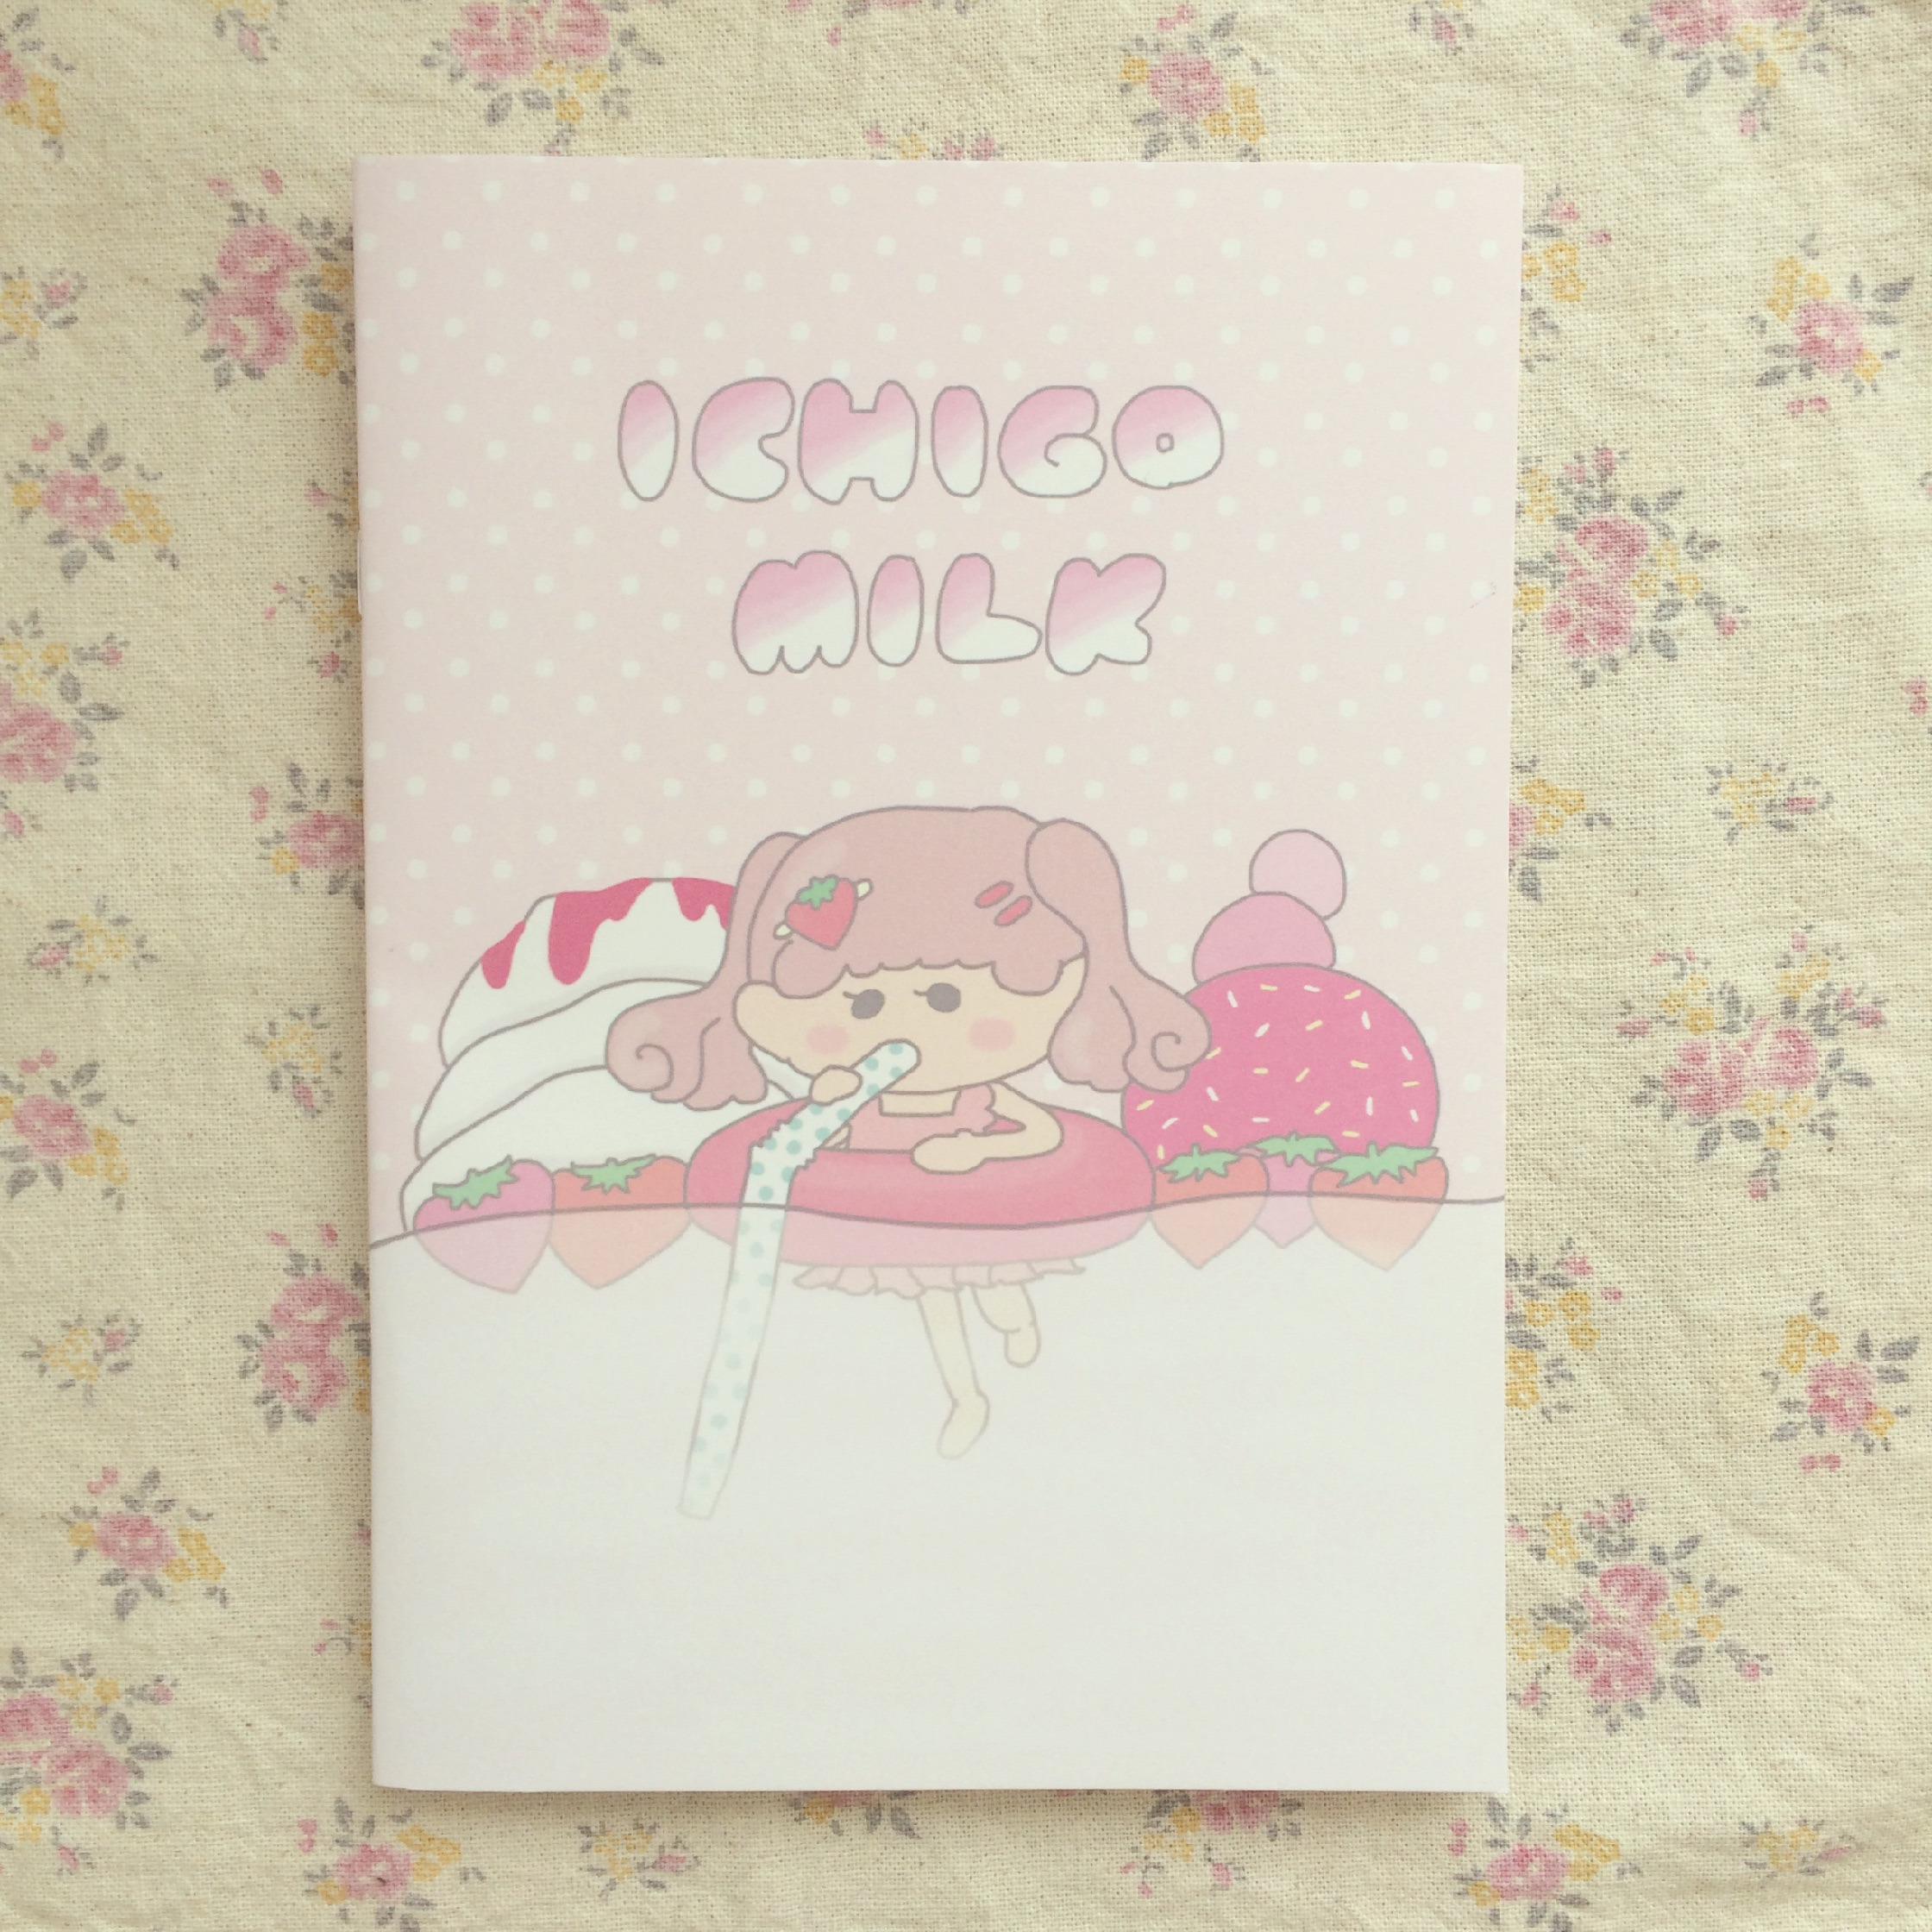 15/9/2015 new notebook on sale!!